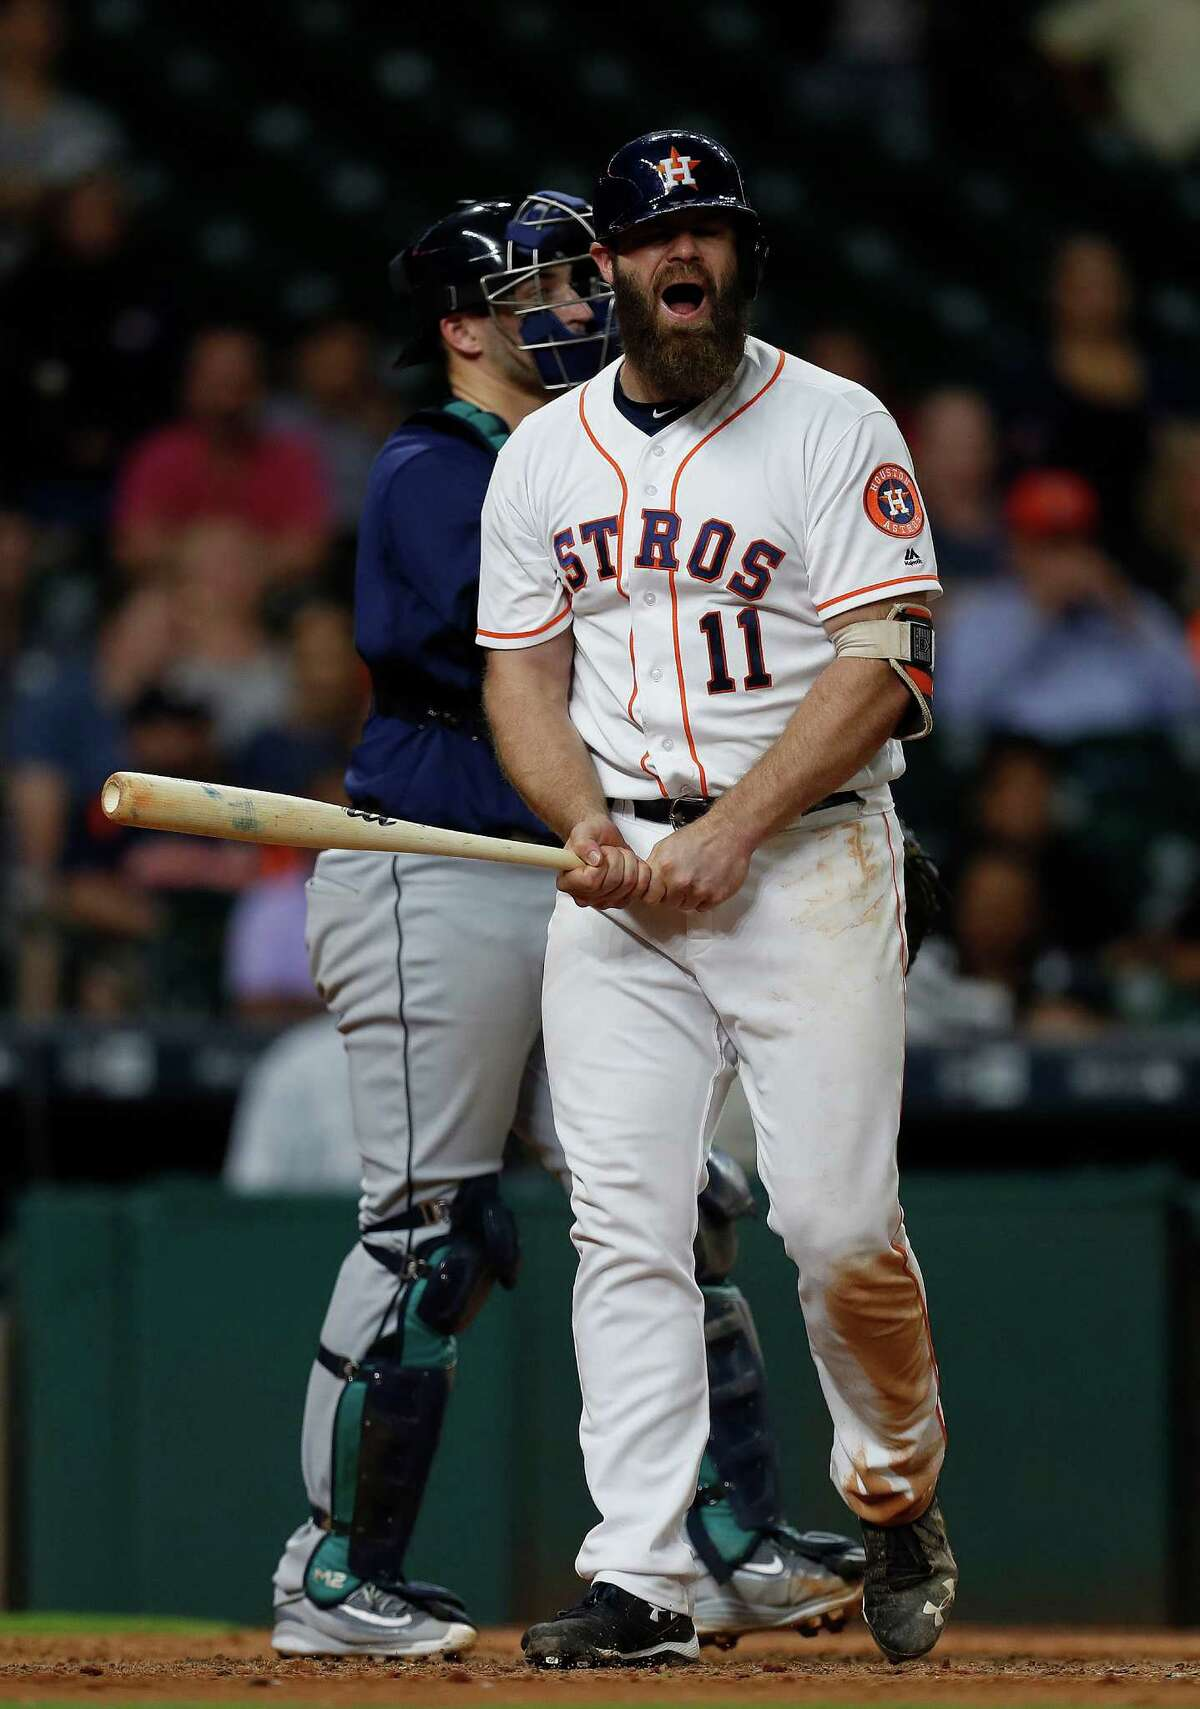 Houston Astros designated hitter Evan Gattis (11) reacts as he struck out with two runners on base in the eleventh inning of an MLB game at Minute Maid Park, Monday, Sept. 26, 2016 in Houston.